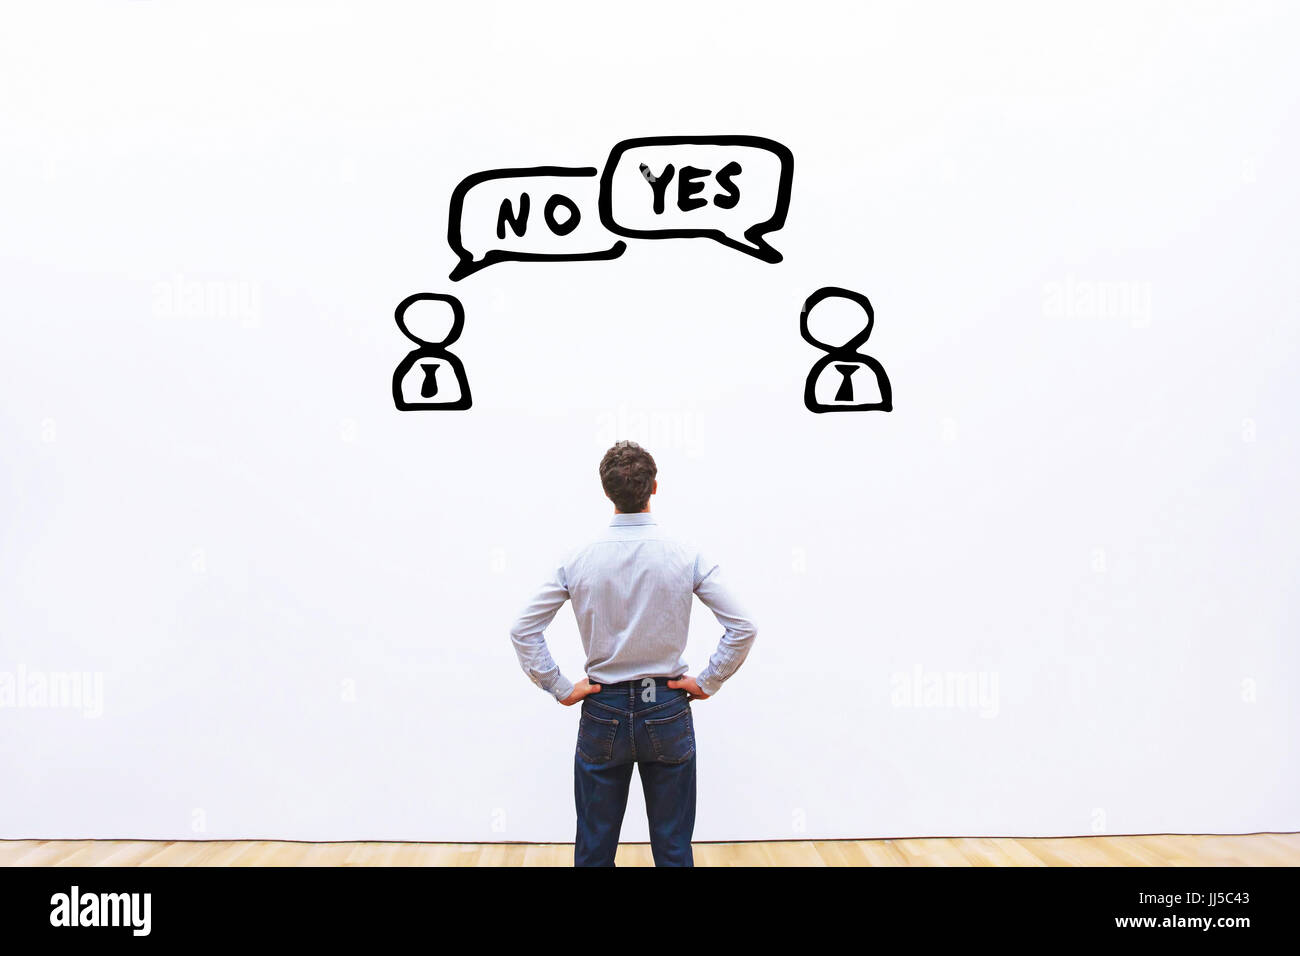 yes vs no, negotiation, dialog or dispute concept, discussion of two business people with different opinions - Stock Image